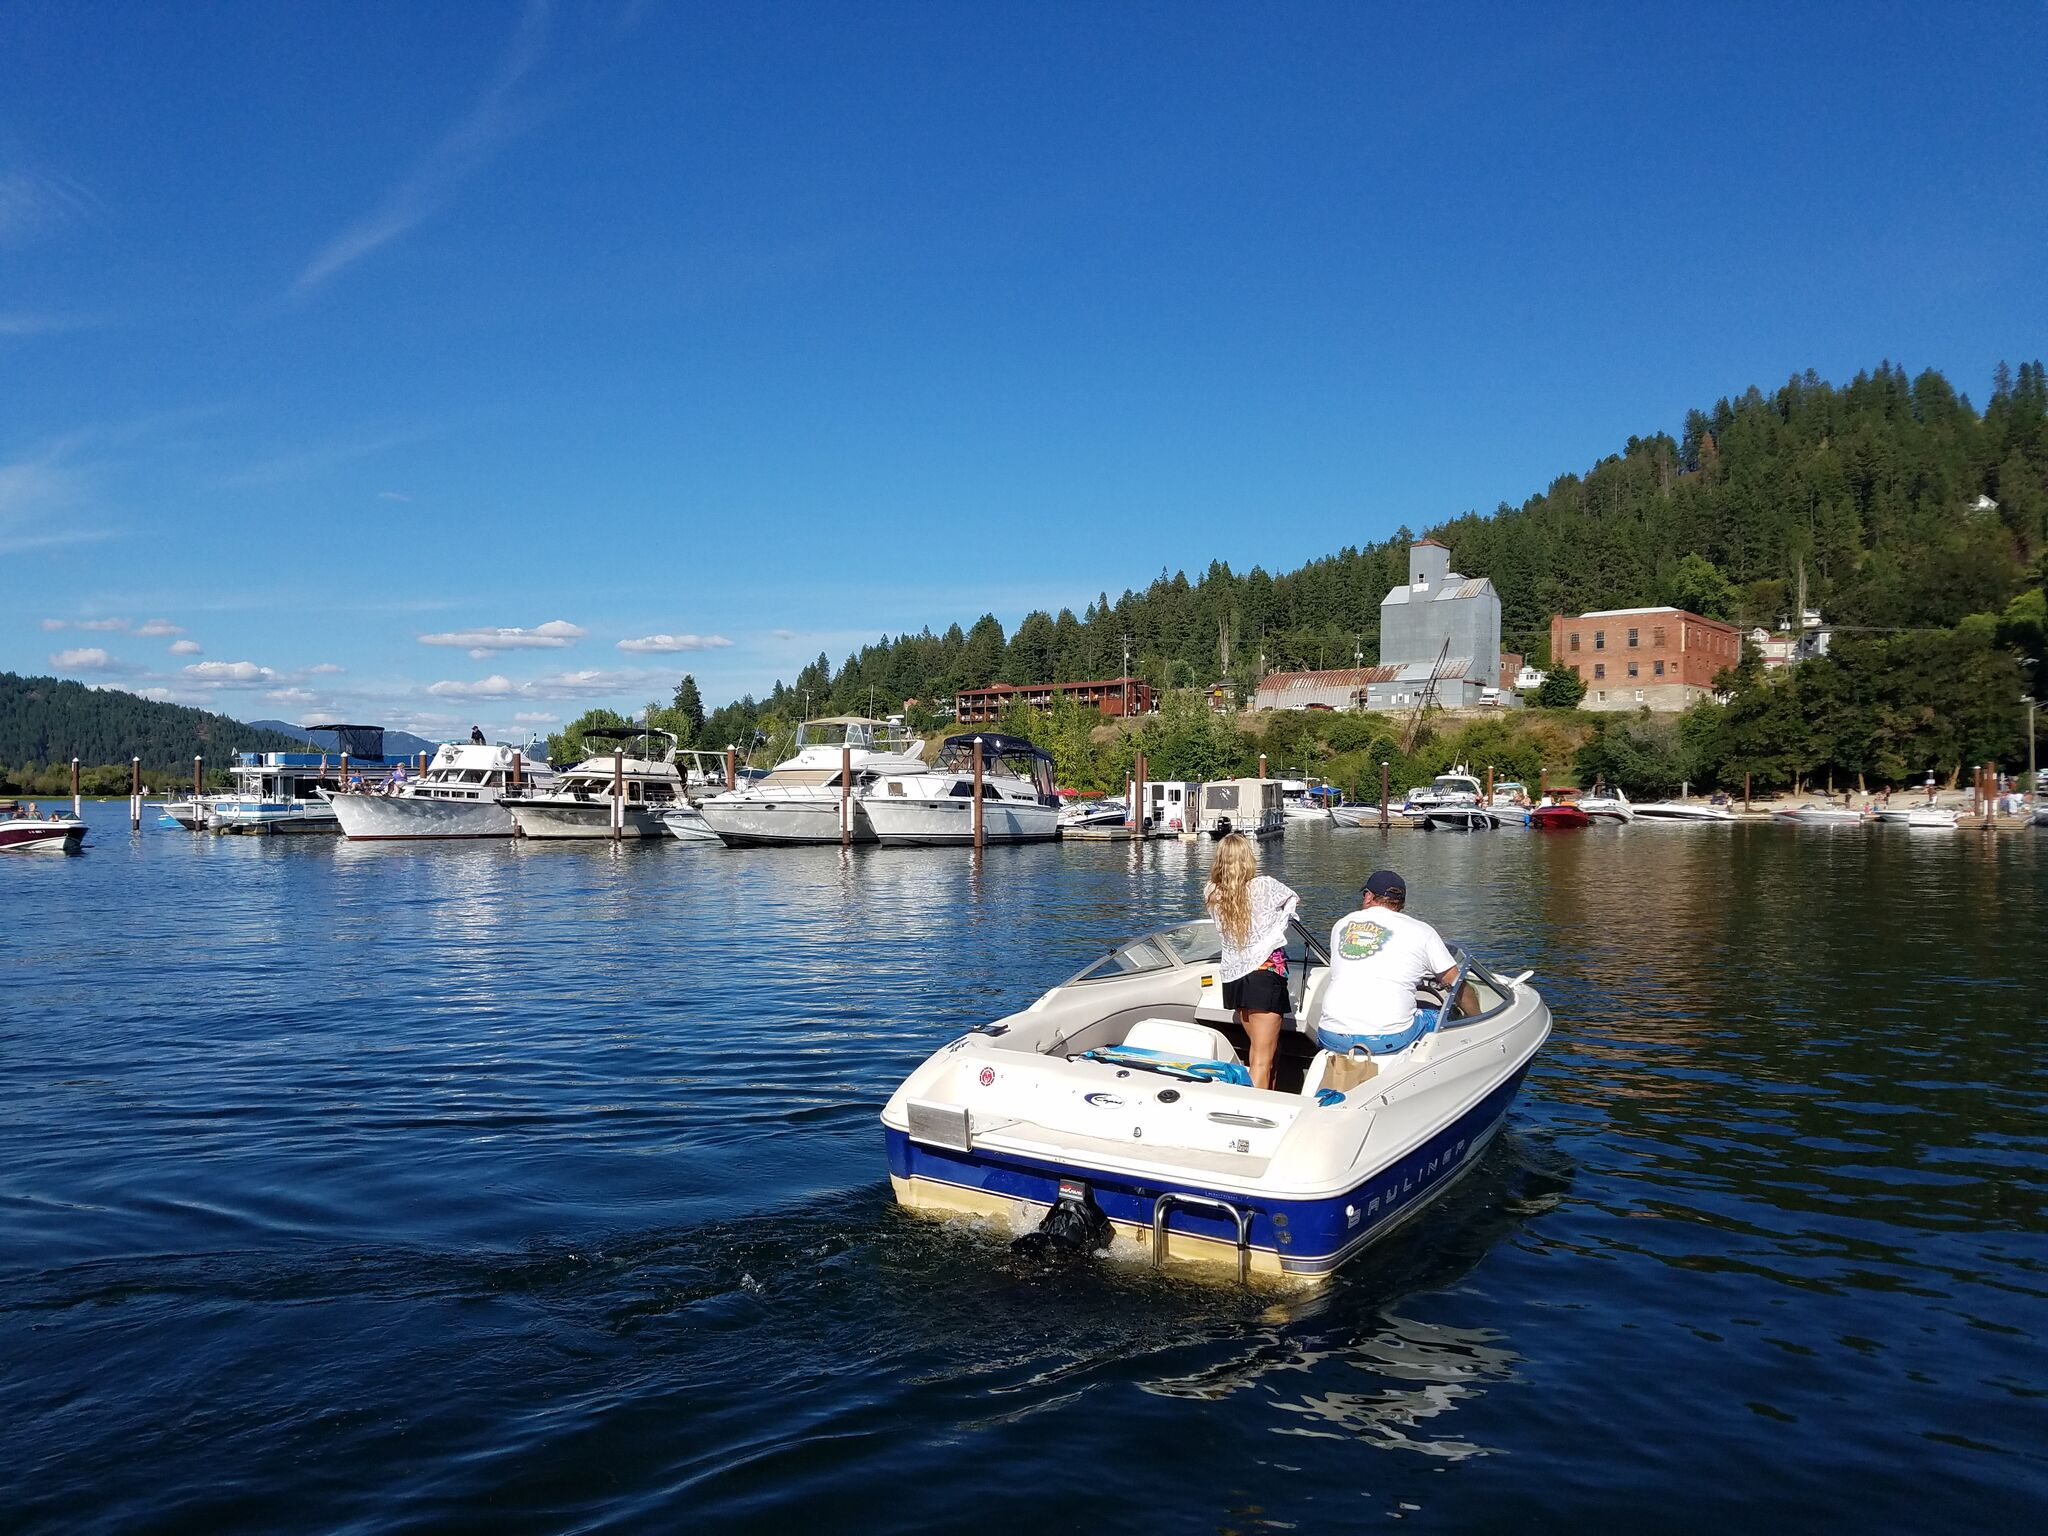 Visit Harrison, Idaho, for On-The-Lake Fun | Out There Outdoors